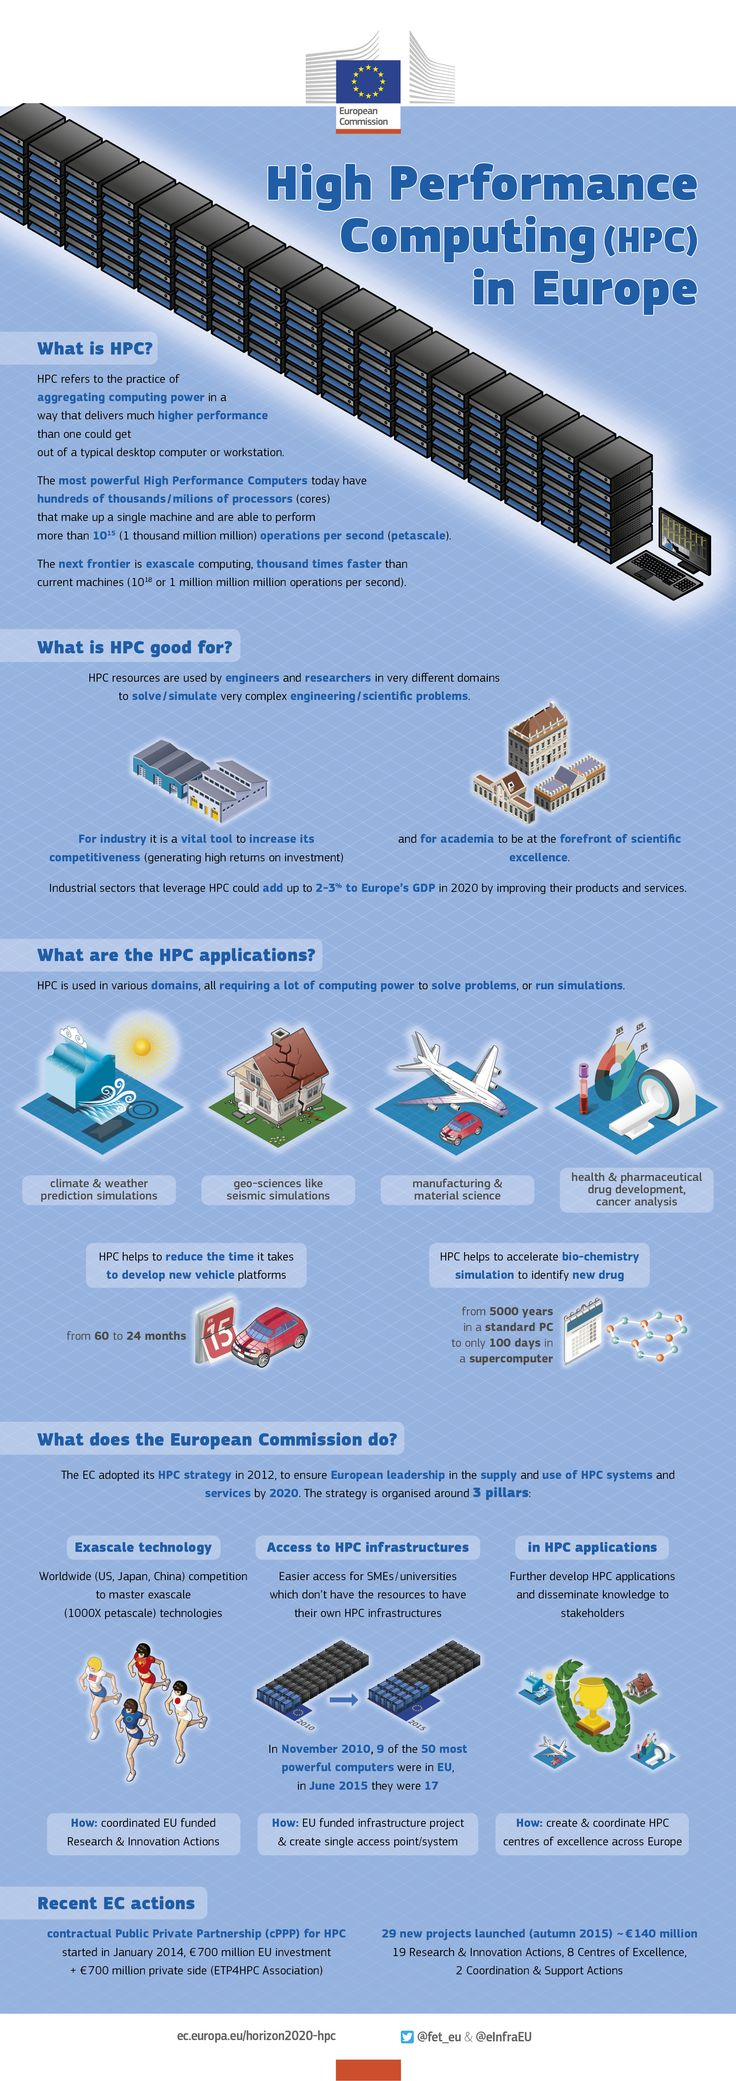 What is High-Performance Computing? Why do we need it? And when can Europe benefit from it? Check out our new infographic and learn about the tremendous power of #HPC http://bit.ly/1jtVCaH #H2020